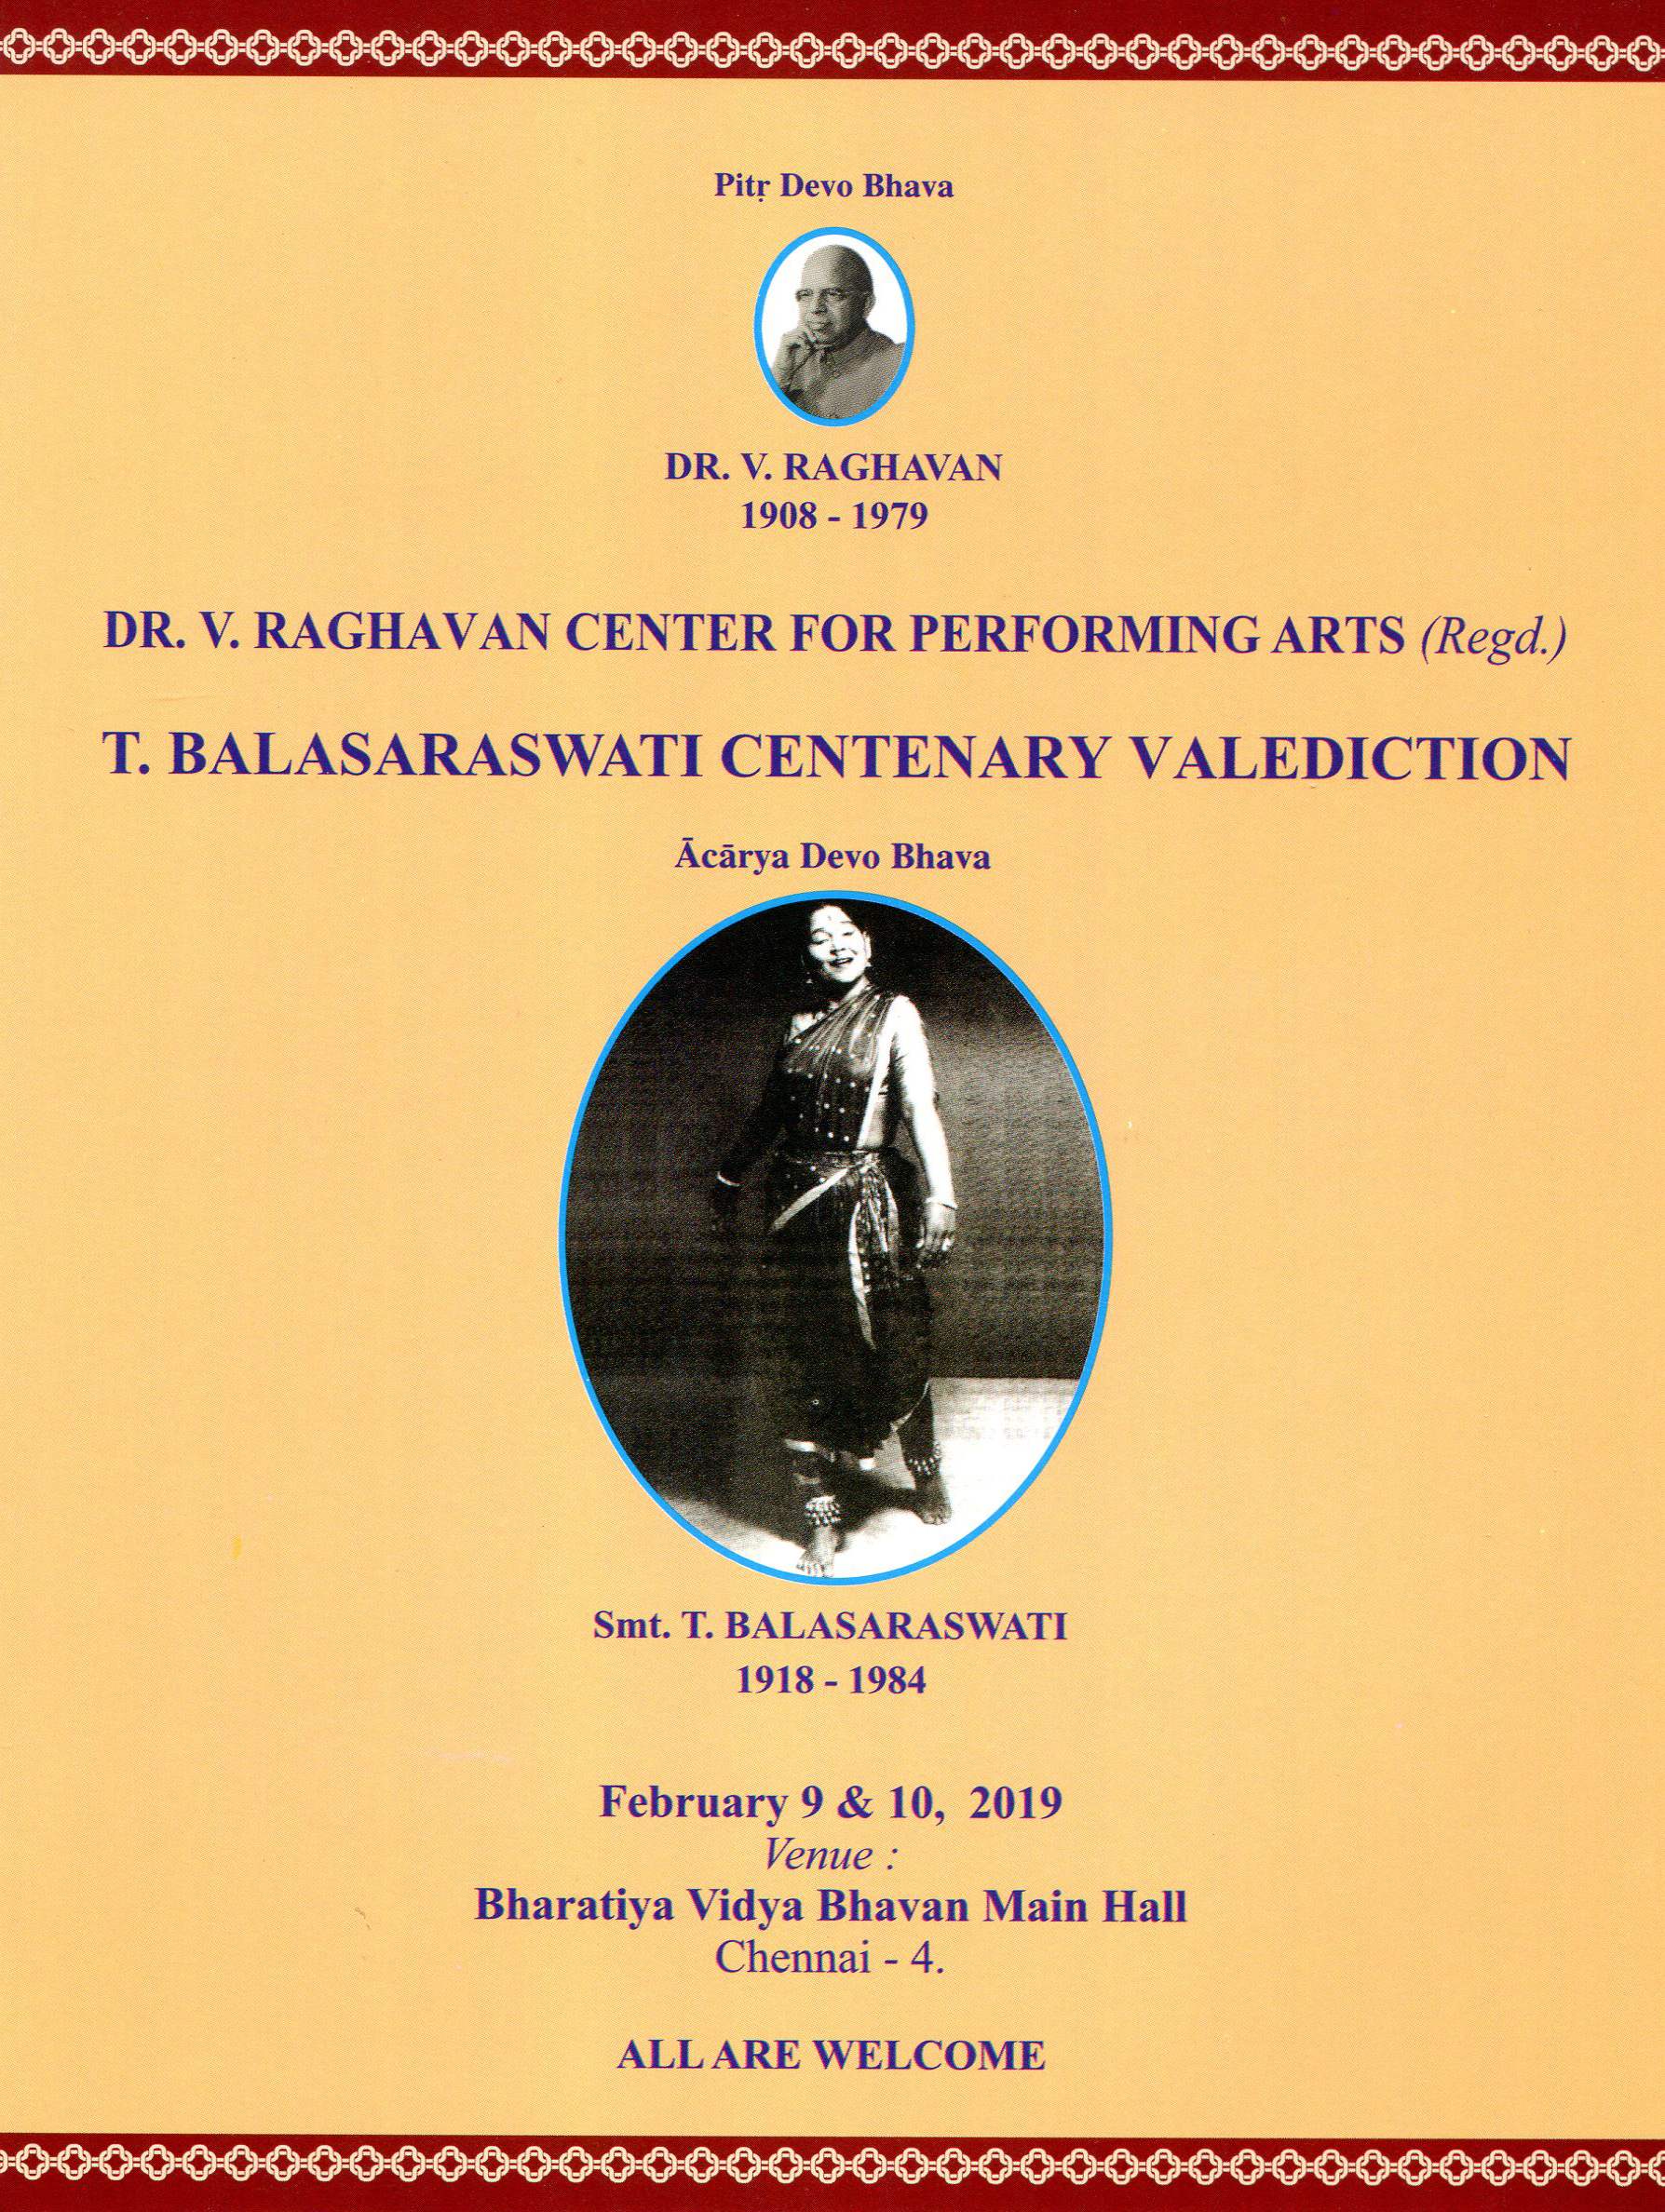 T Balasaraswati Centenary Valediction